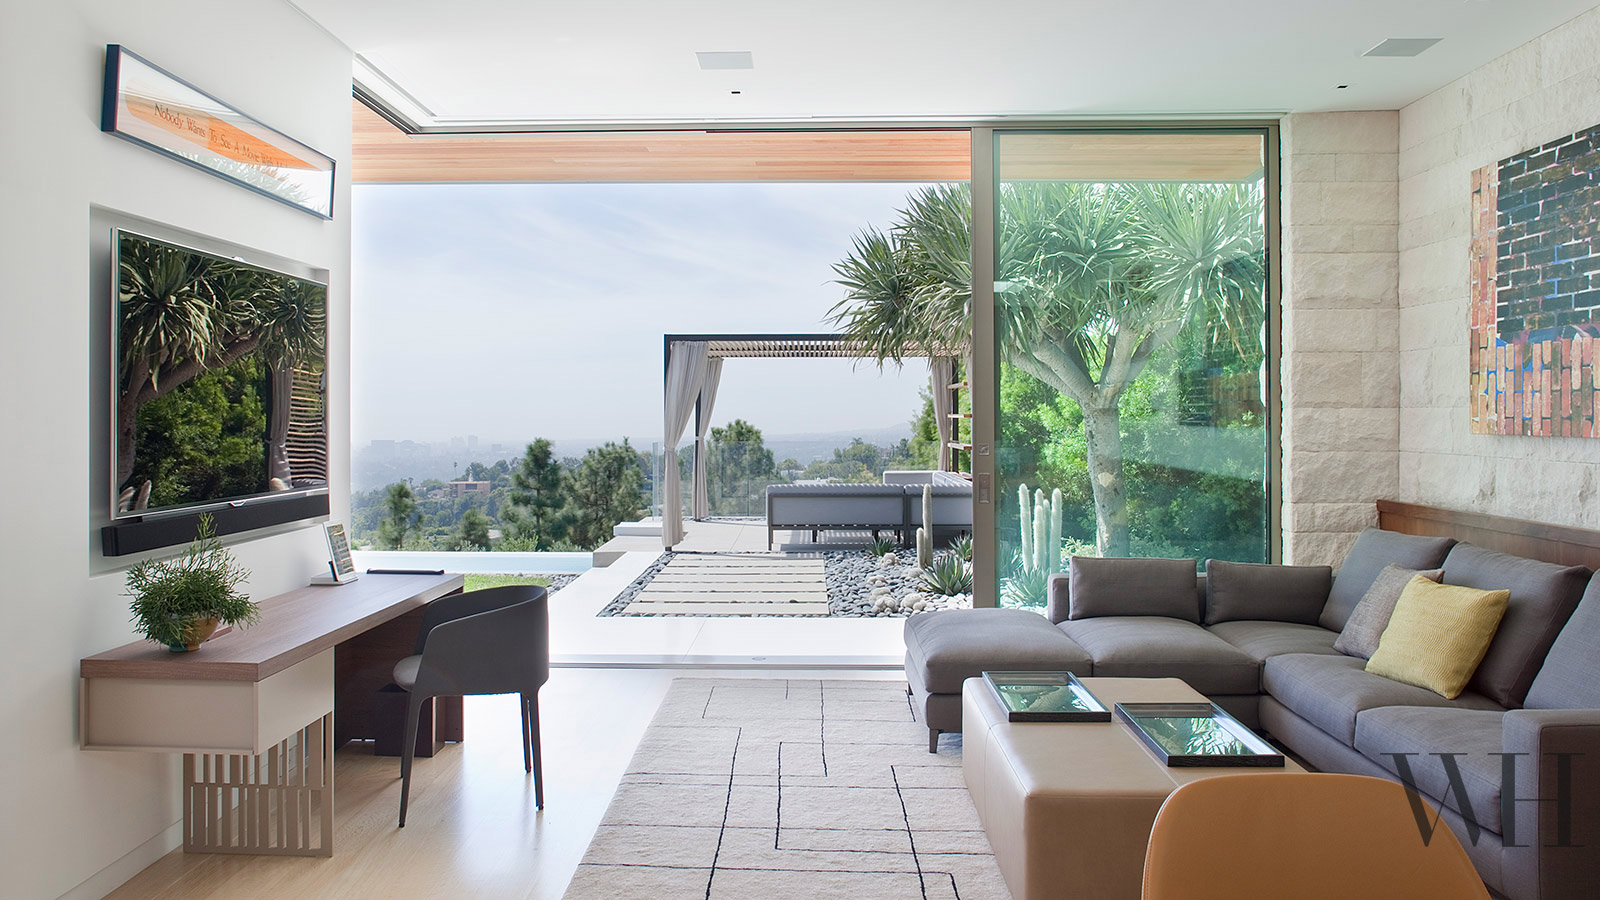 Hillside California Home with Gorgeous Outdoor Spaces on Interior:ybeqvfpgwcq= Modern House  id=97237